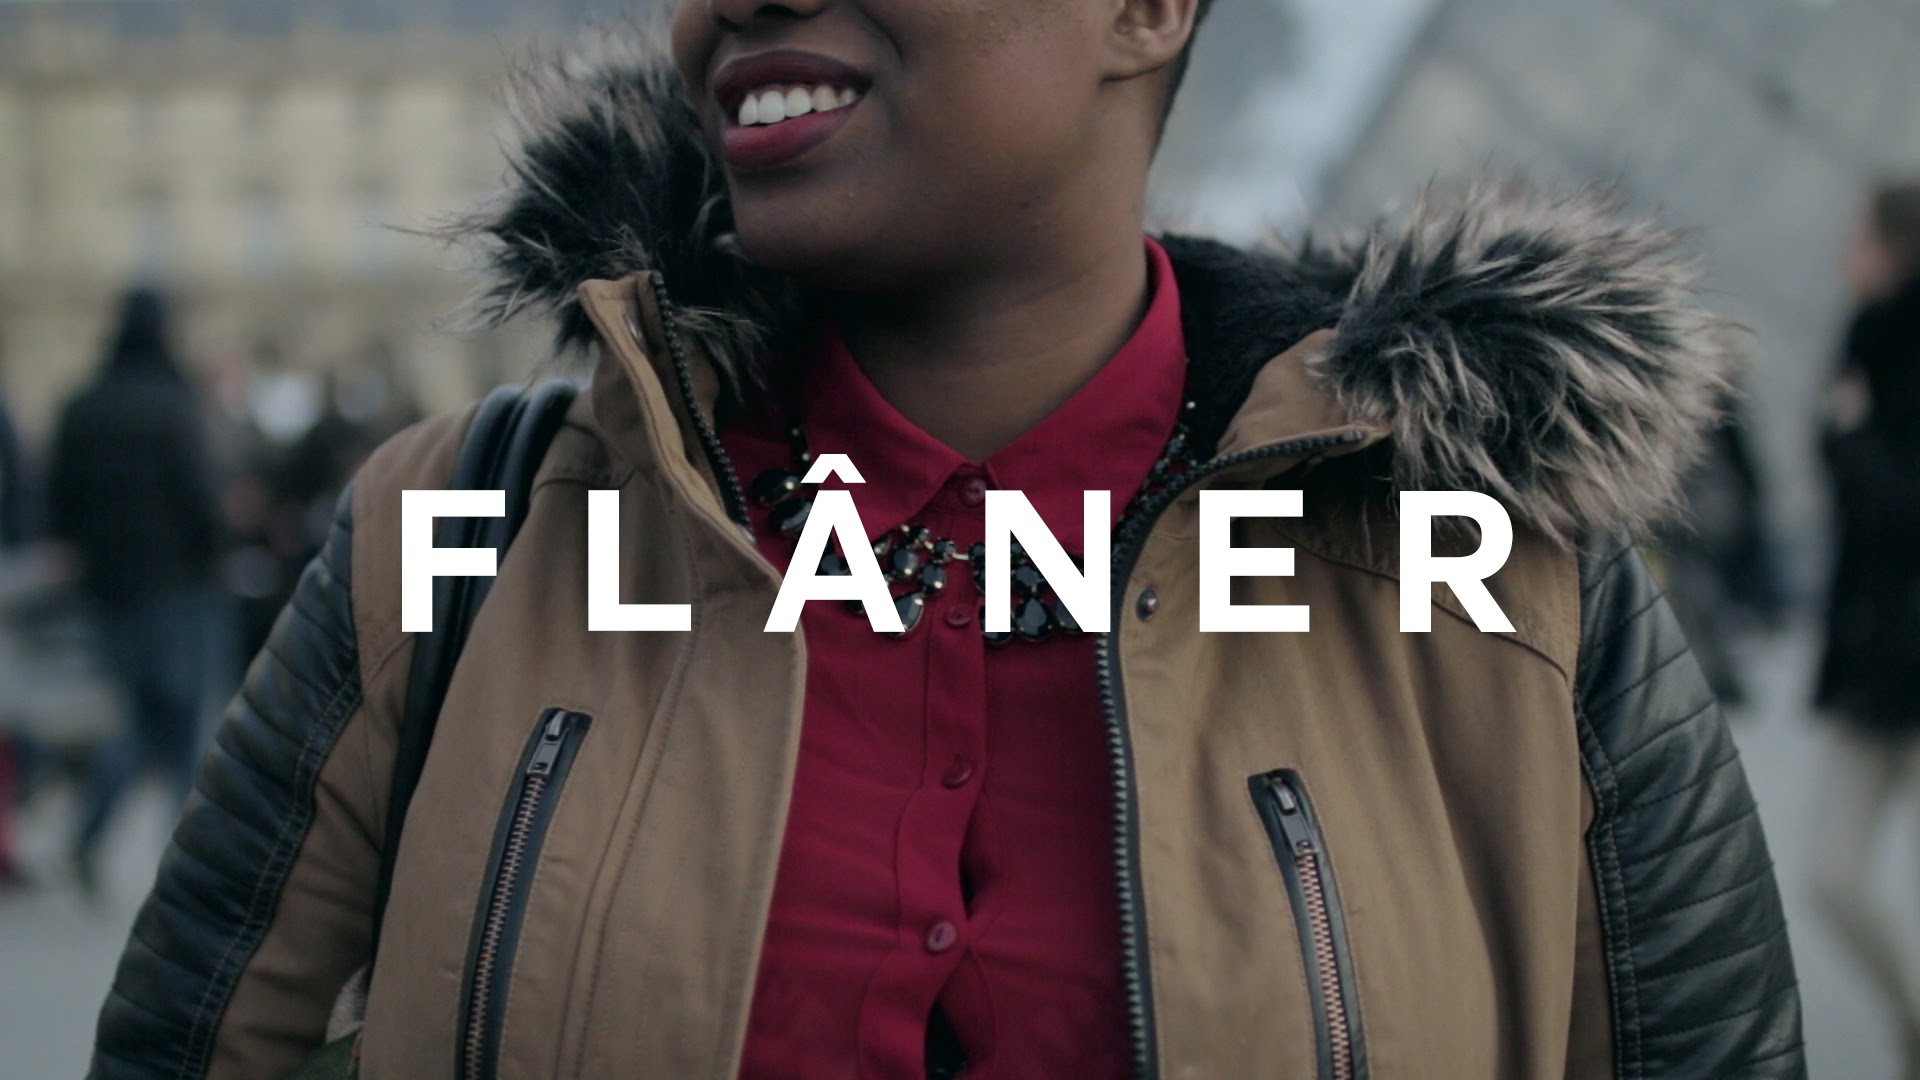 flâner | ep 4 | Beauty school, fake deep, sexual expression, religion & more